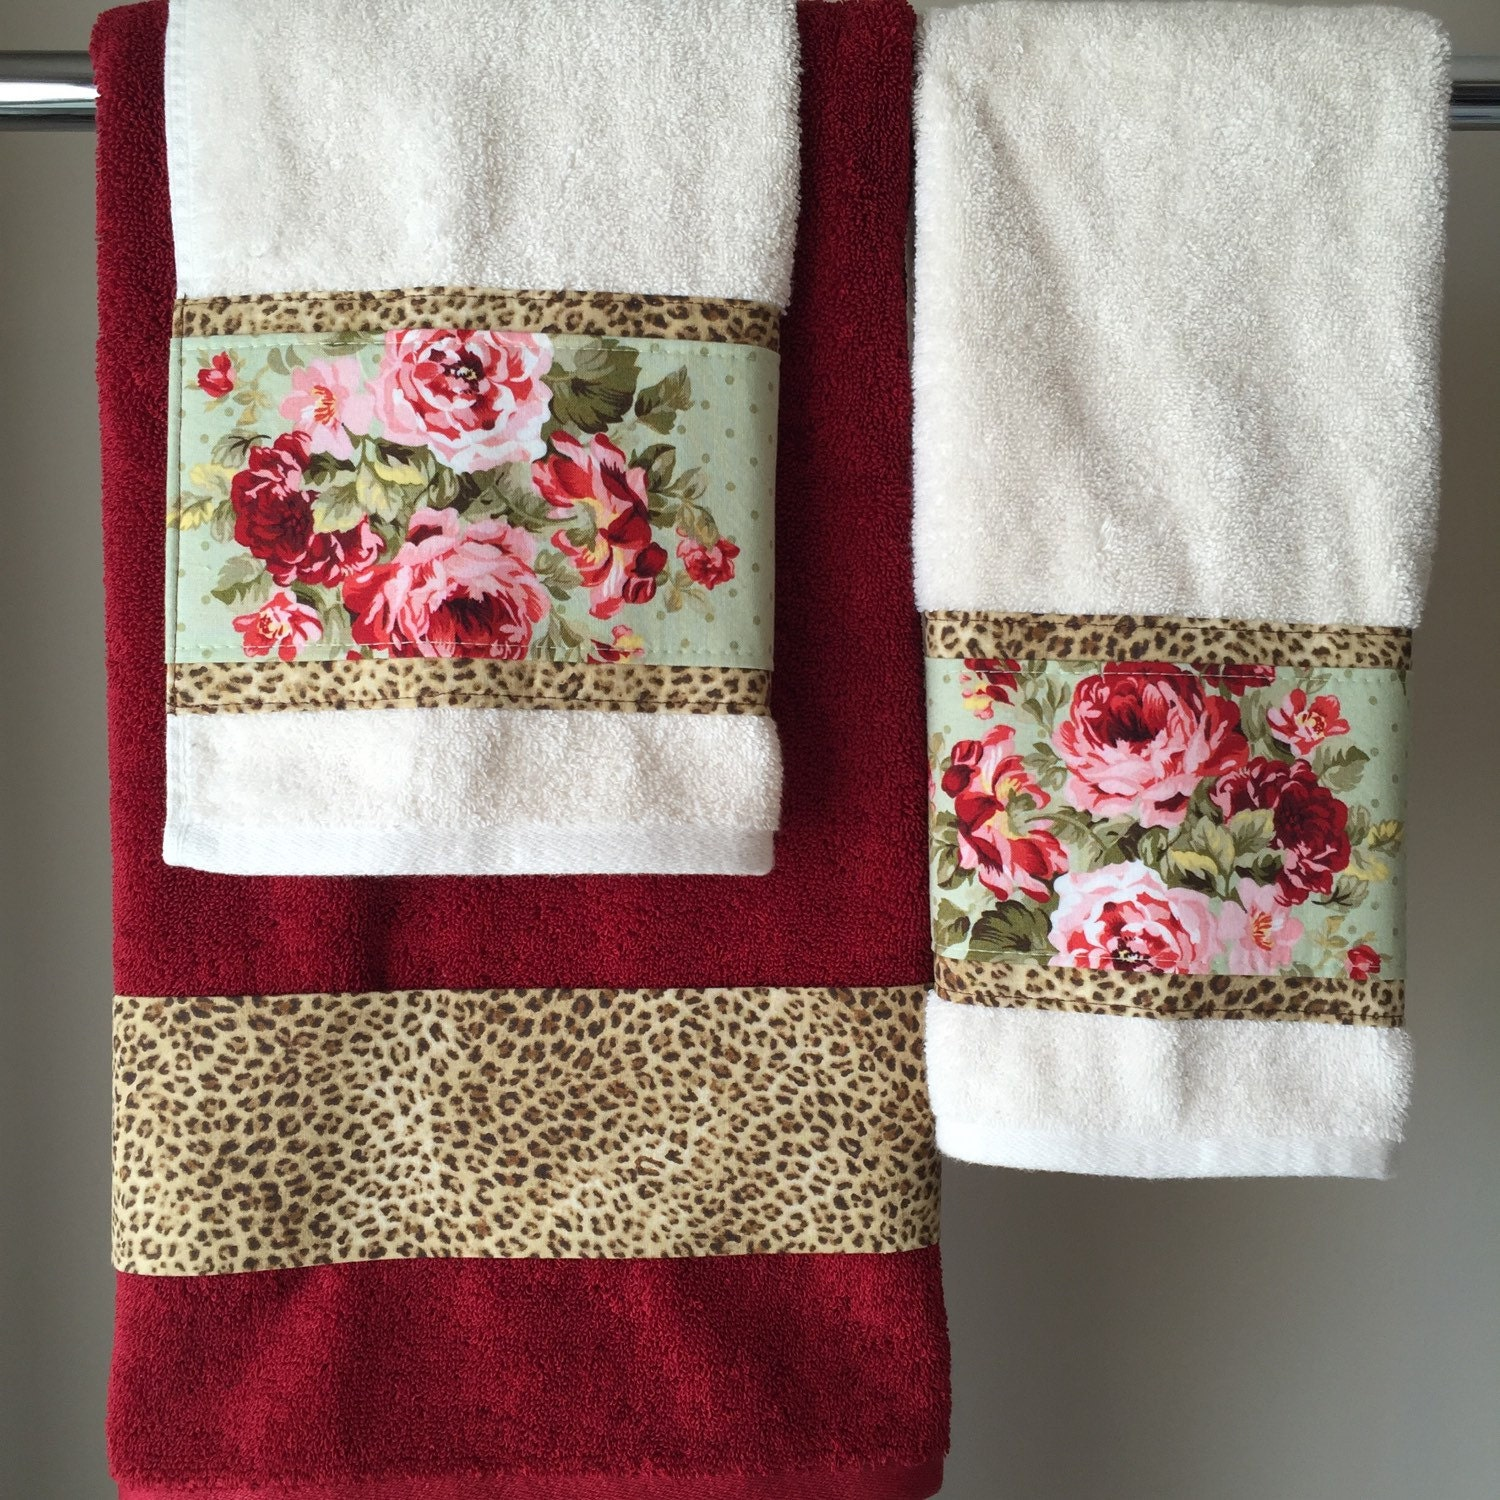 Reproduction Vintage Bath Towels: Bath Towels Towel Sets Vintage Rose Leopard Towels Red